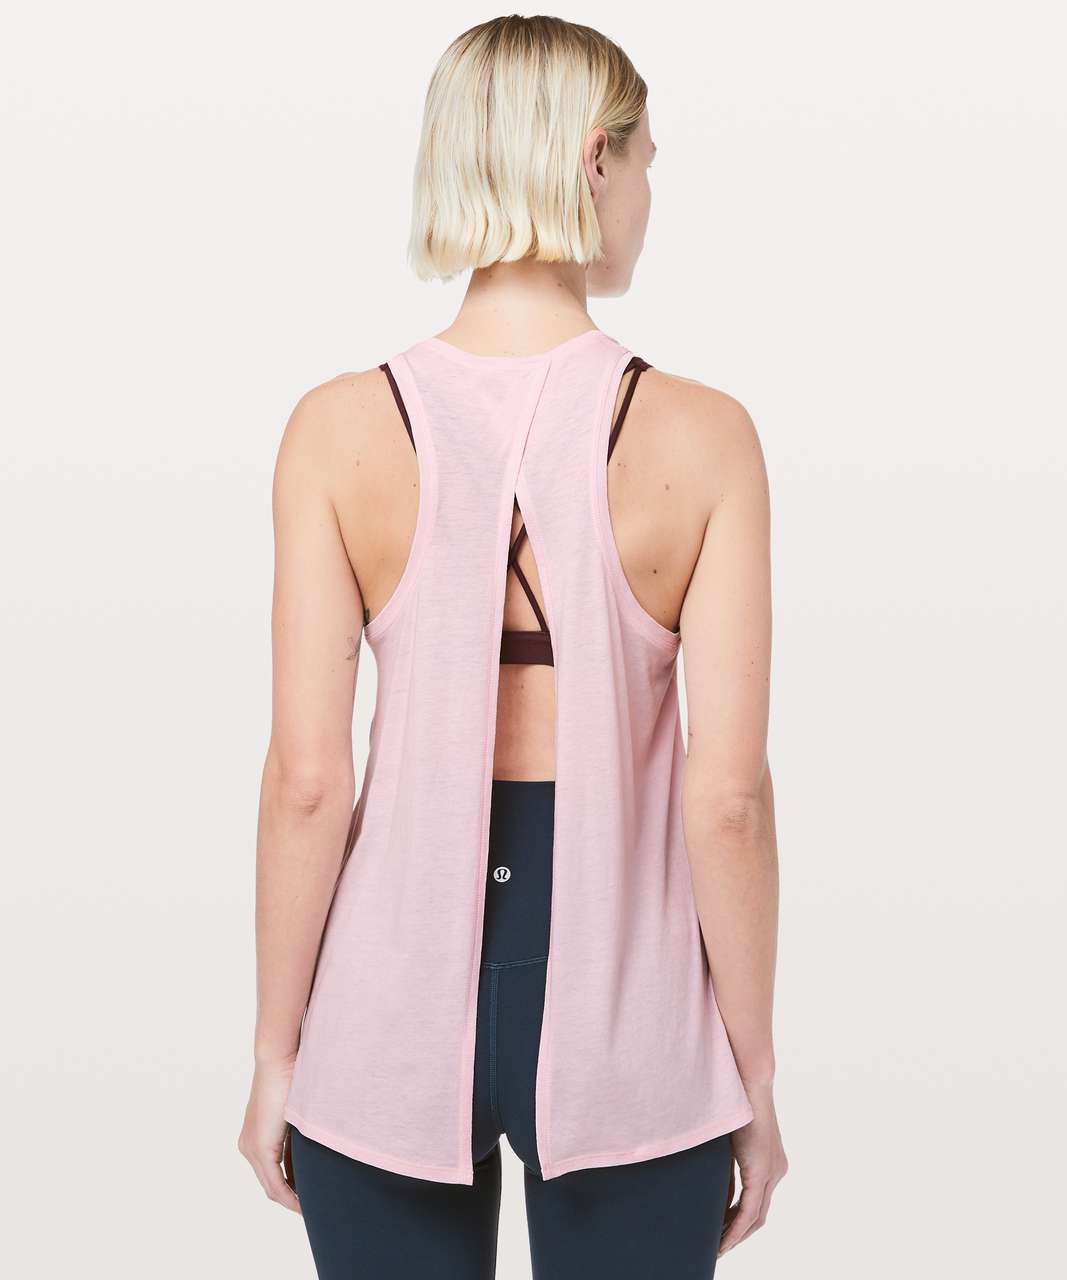 Lululemon All Tied Up Tank Light Petals Lulu Fanatics Another word for tied up. lululemon all tied up tank light petals